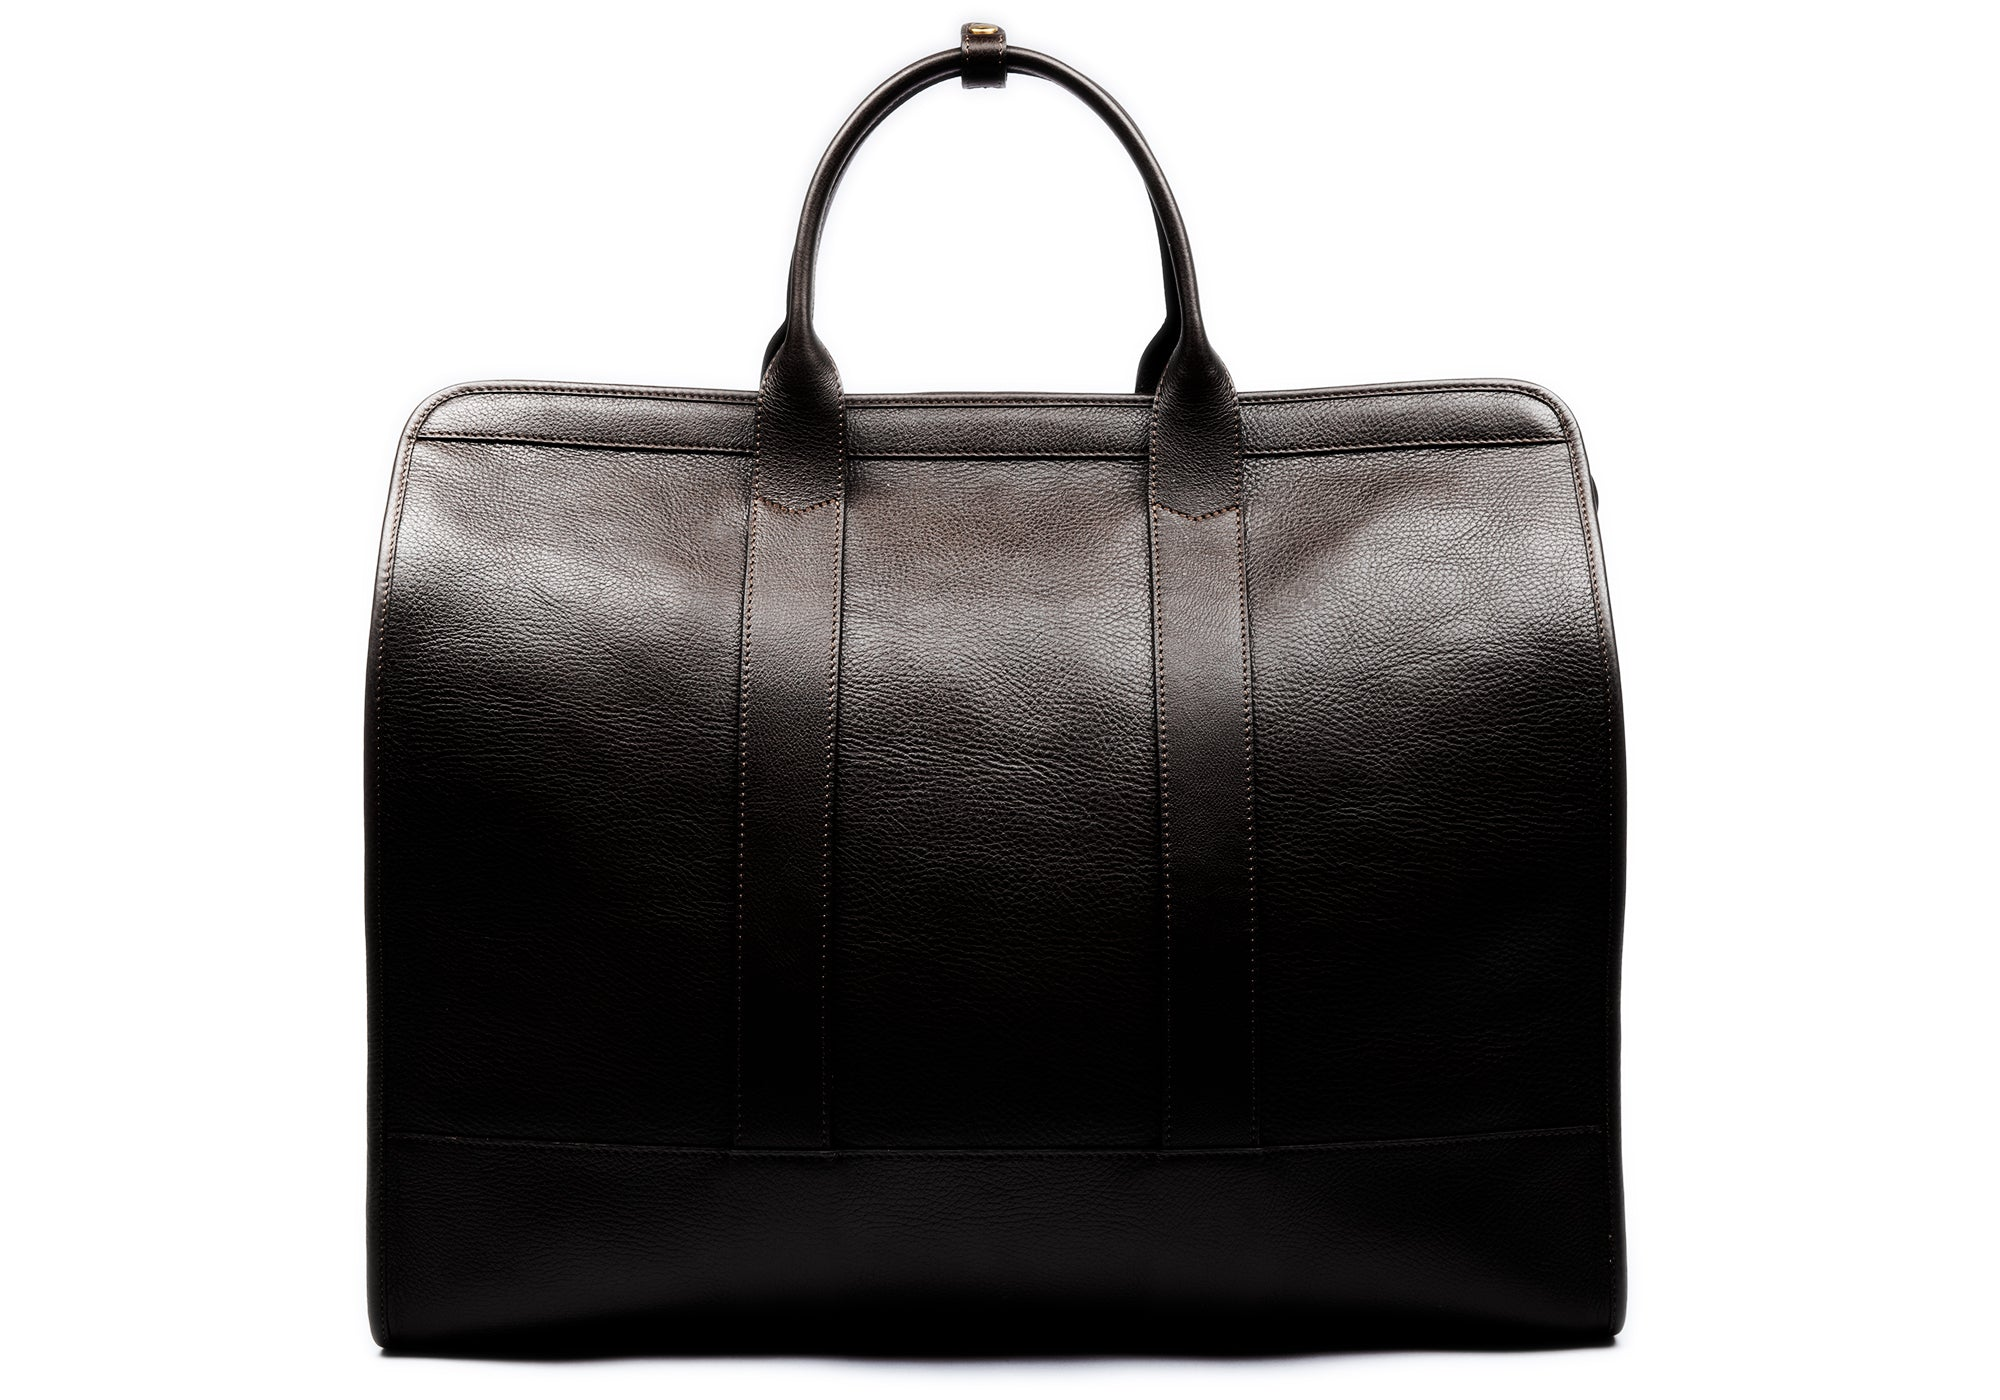 Leather Trunk Duffle Bag Leather Trunk Duffle Bag